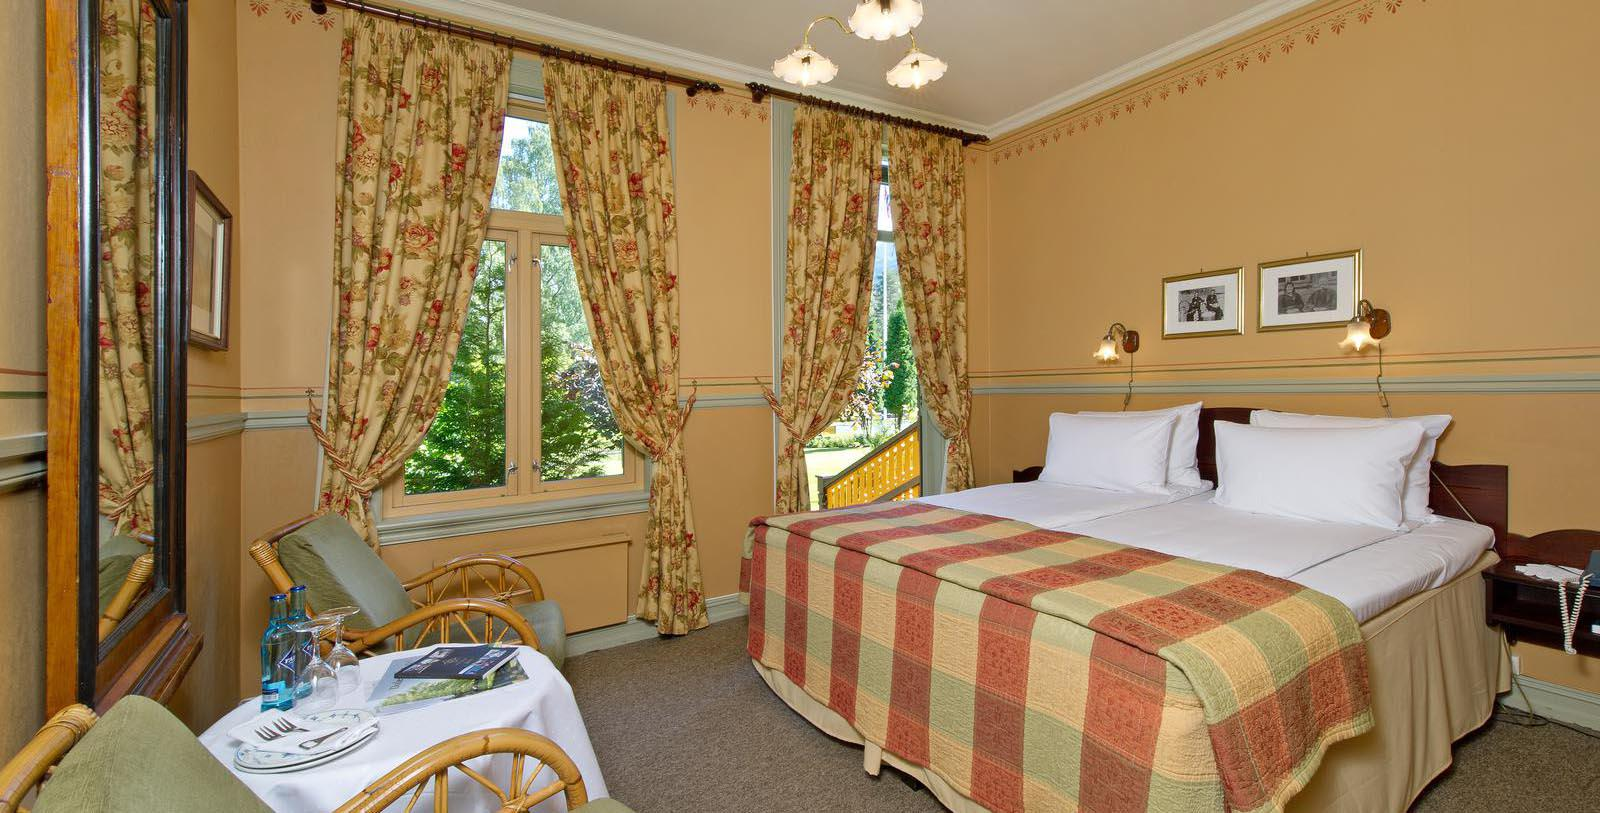 Image of guestroom Dalen Hotel, 1894, Member of Historic Hotels Worldwide, in Dalen, Norway, Accommodations